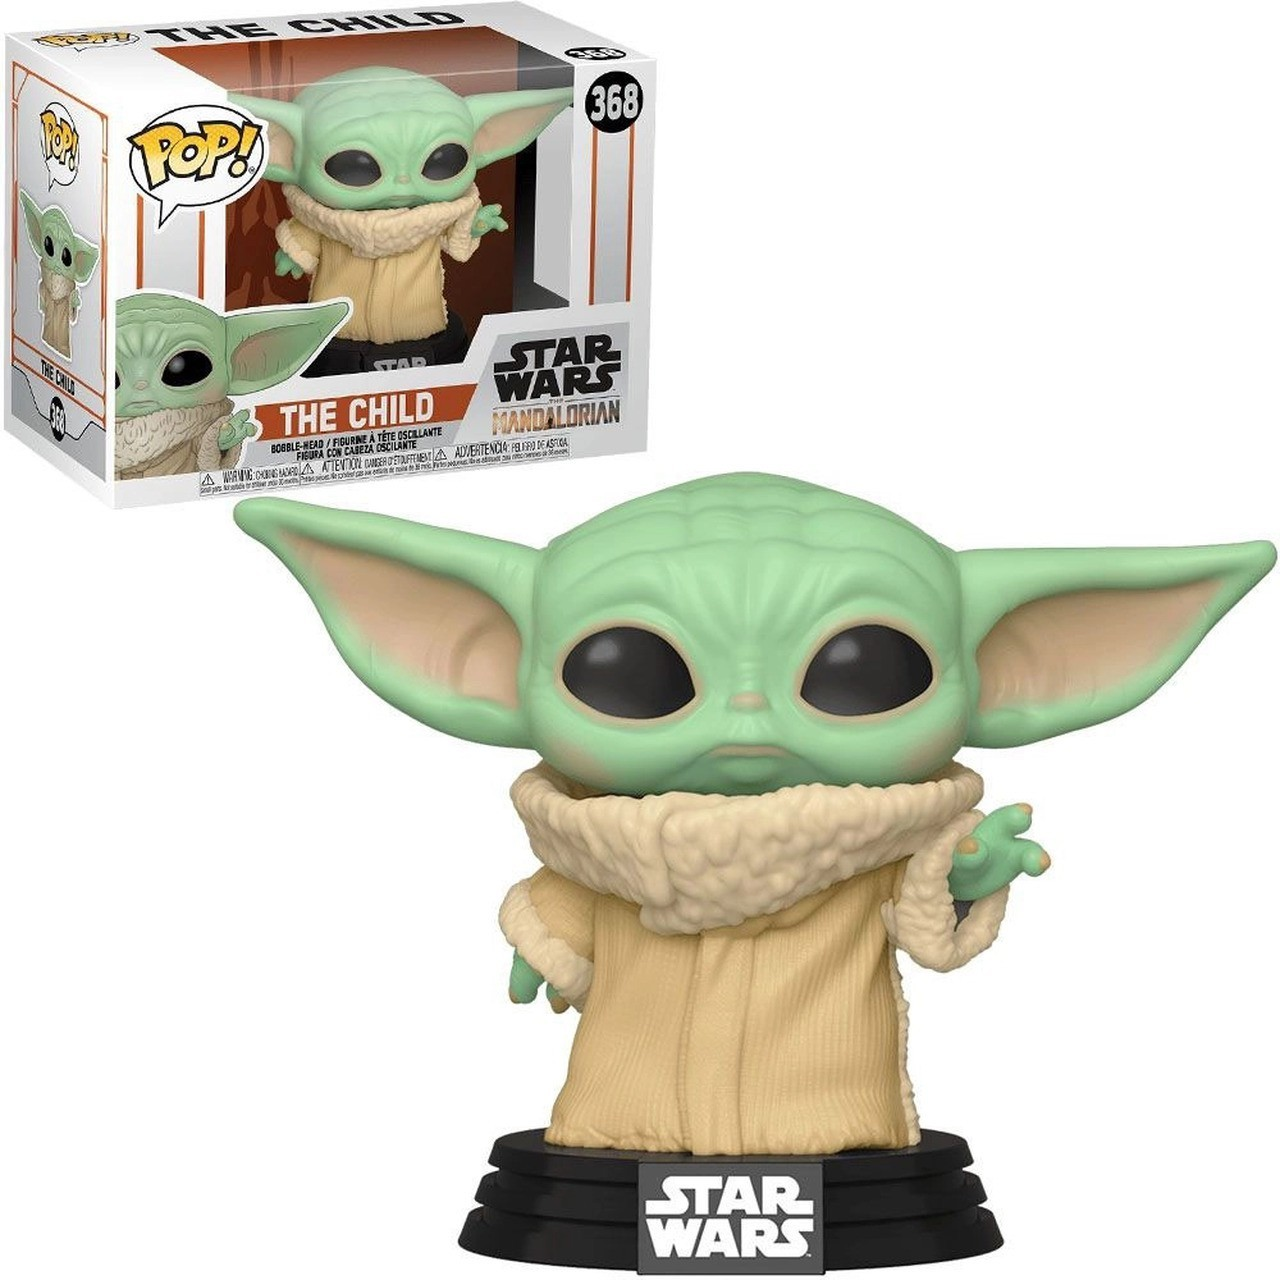 Funko Pop! Grogu ''Baby Yoda'' (The Child): The Mandalorian (Star Wars) Disney #368 - Funko